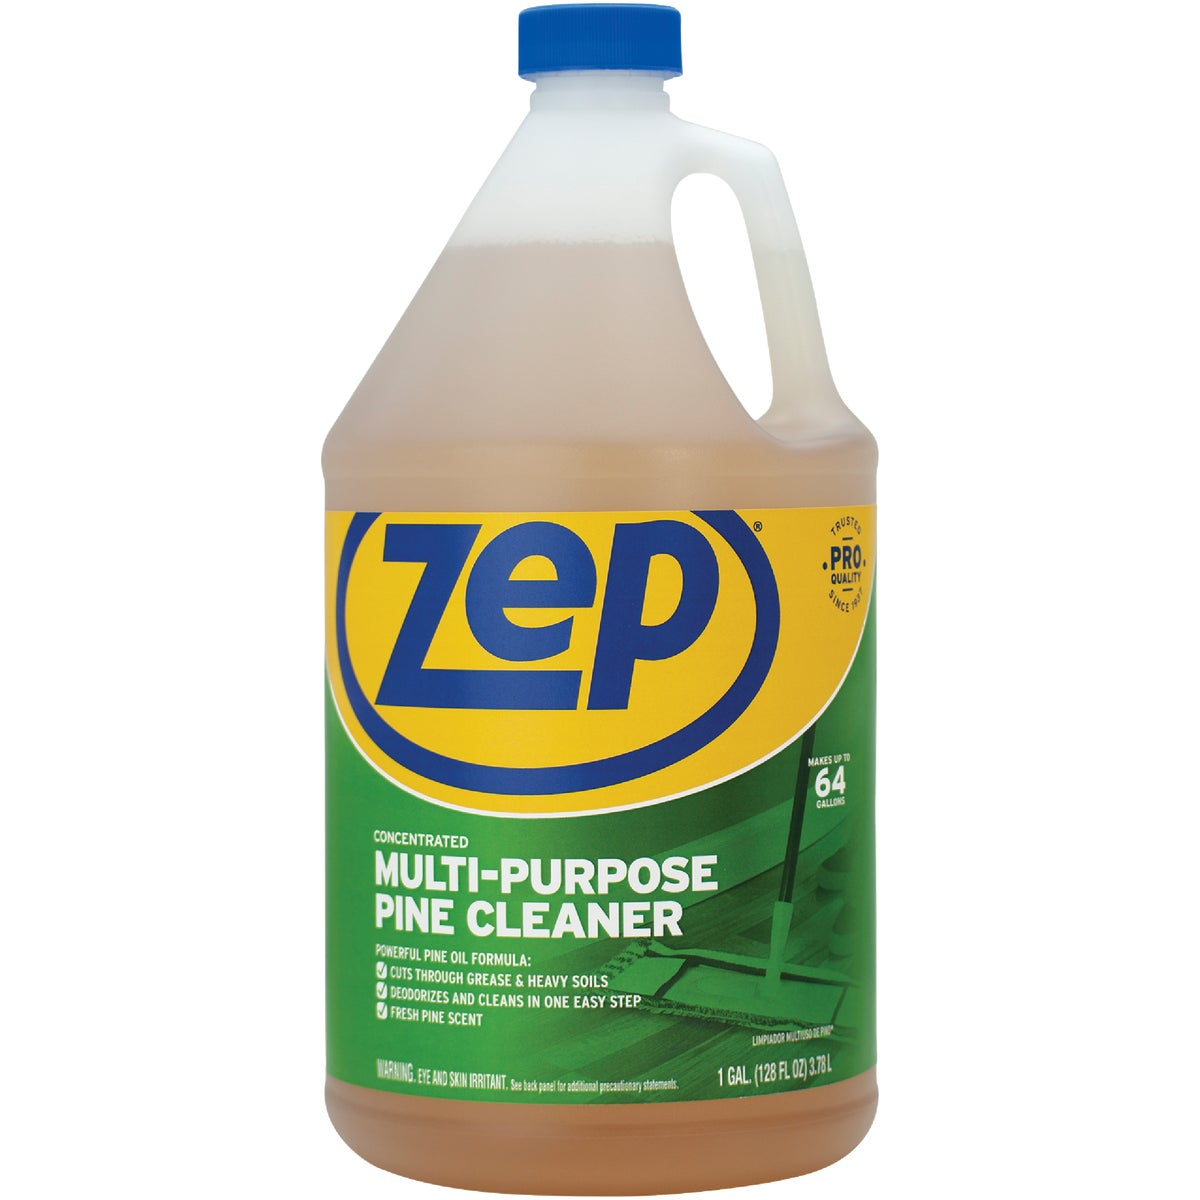 GA MLT PUR PINE CLEANER - ZUMPP128 by Zep Enforcer Inc